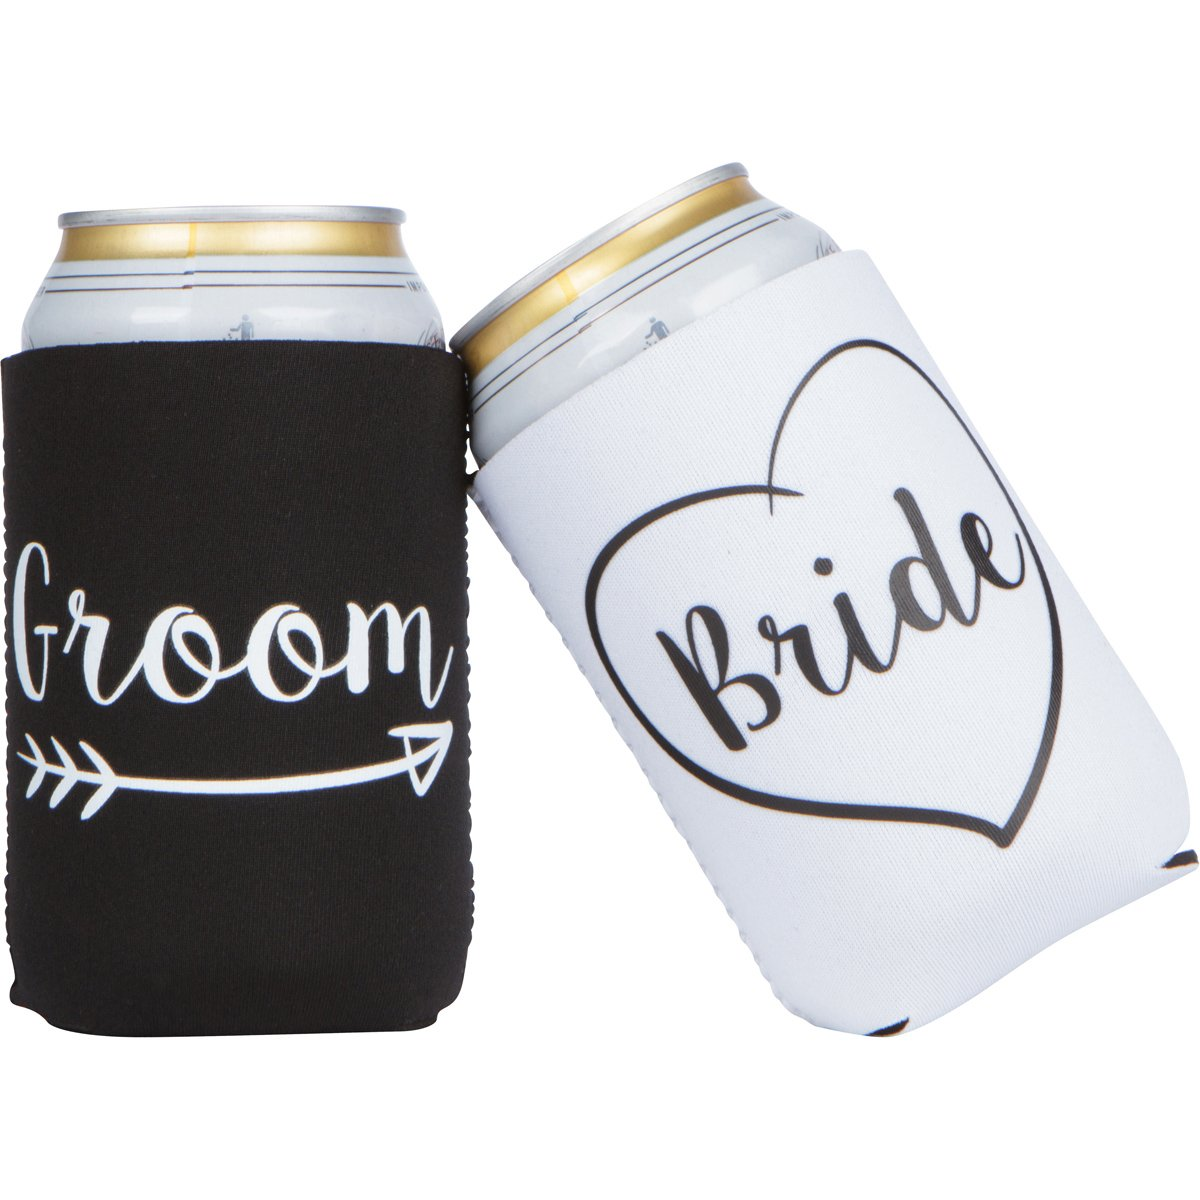 Cute Wedding Gifts - Bride and Groom Novelty Can Cooler Combo - Engagement Gift for Couples by The Plympton Company (Image #1)